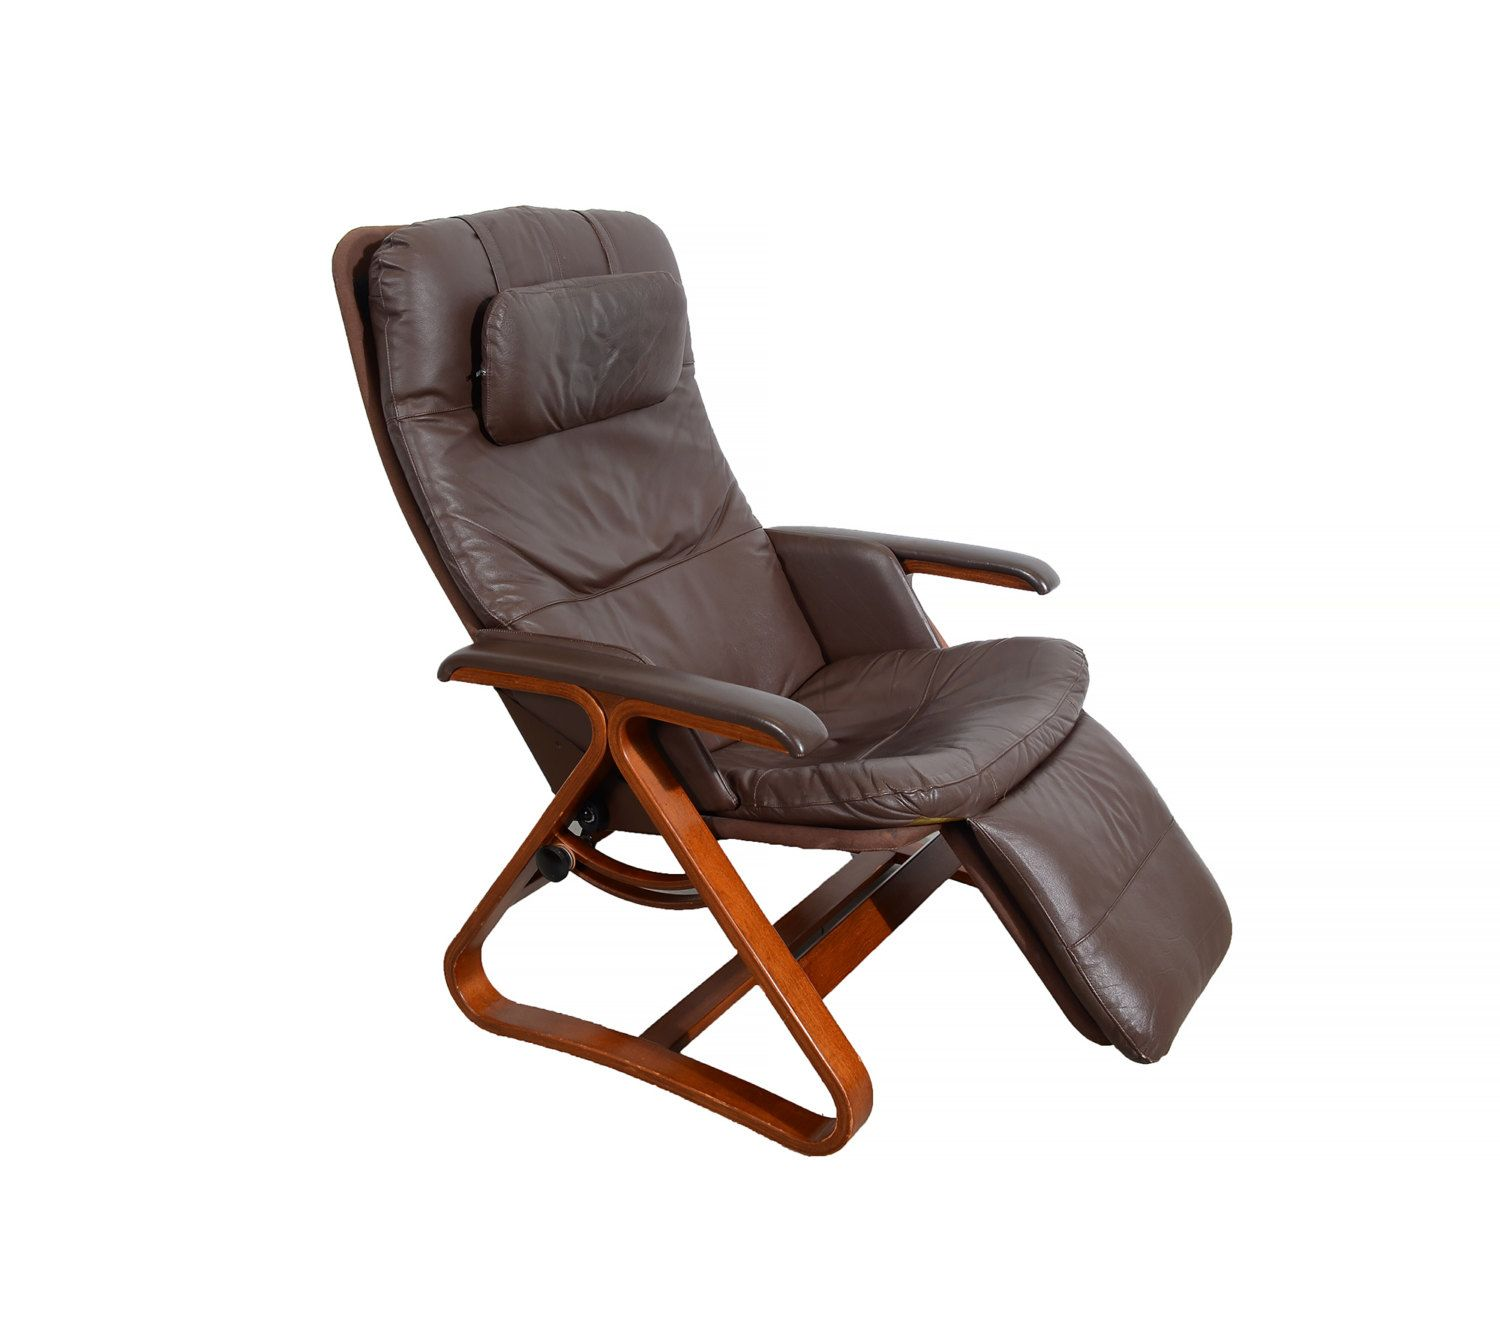 Leather lounge chair backsaver zero gravity chair danish for Chair zero gravity